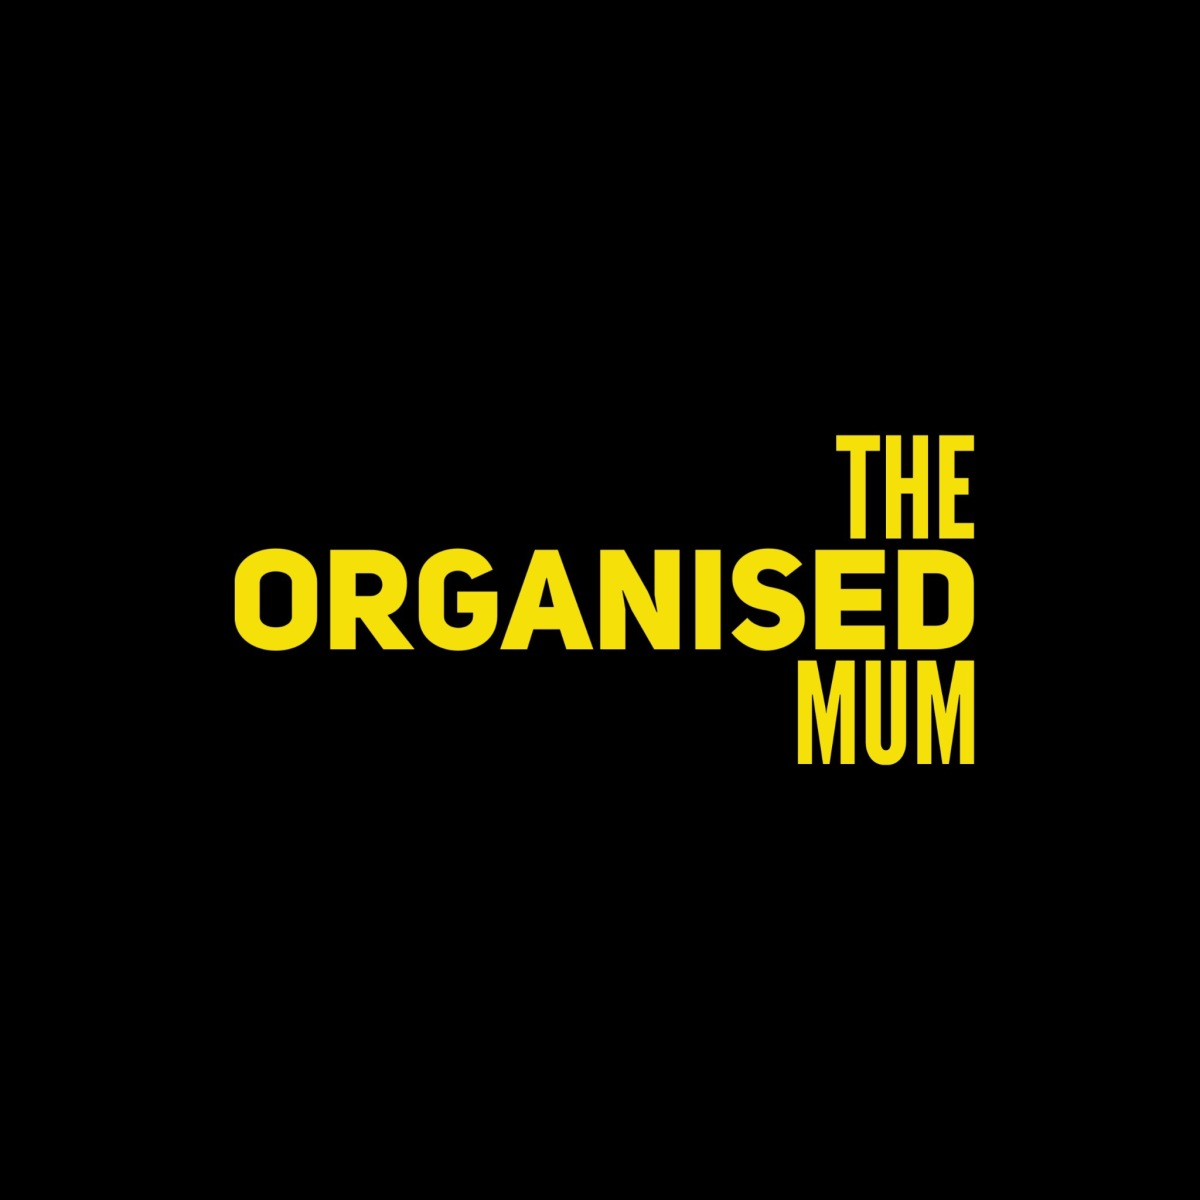 The Organised Mum Method Explained